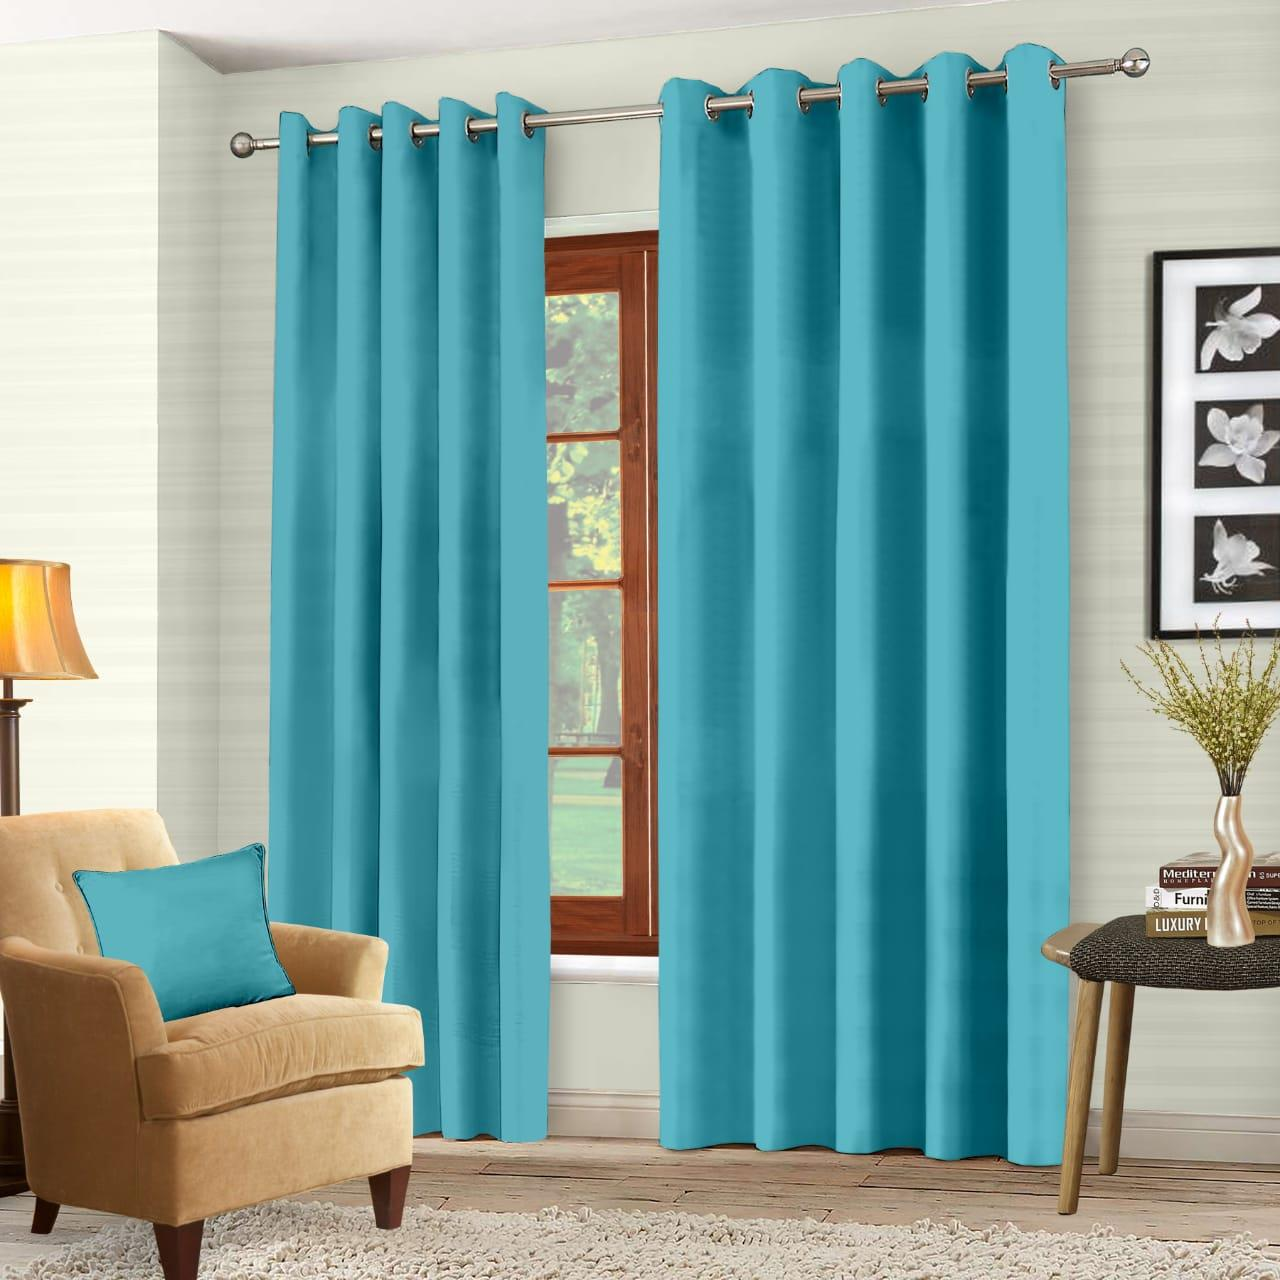 Luxury-Thermal-Blackout-Eyelet-Ring-Top-Curtains-Pair-with-tie-backs thumbnail 52